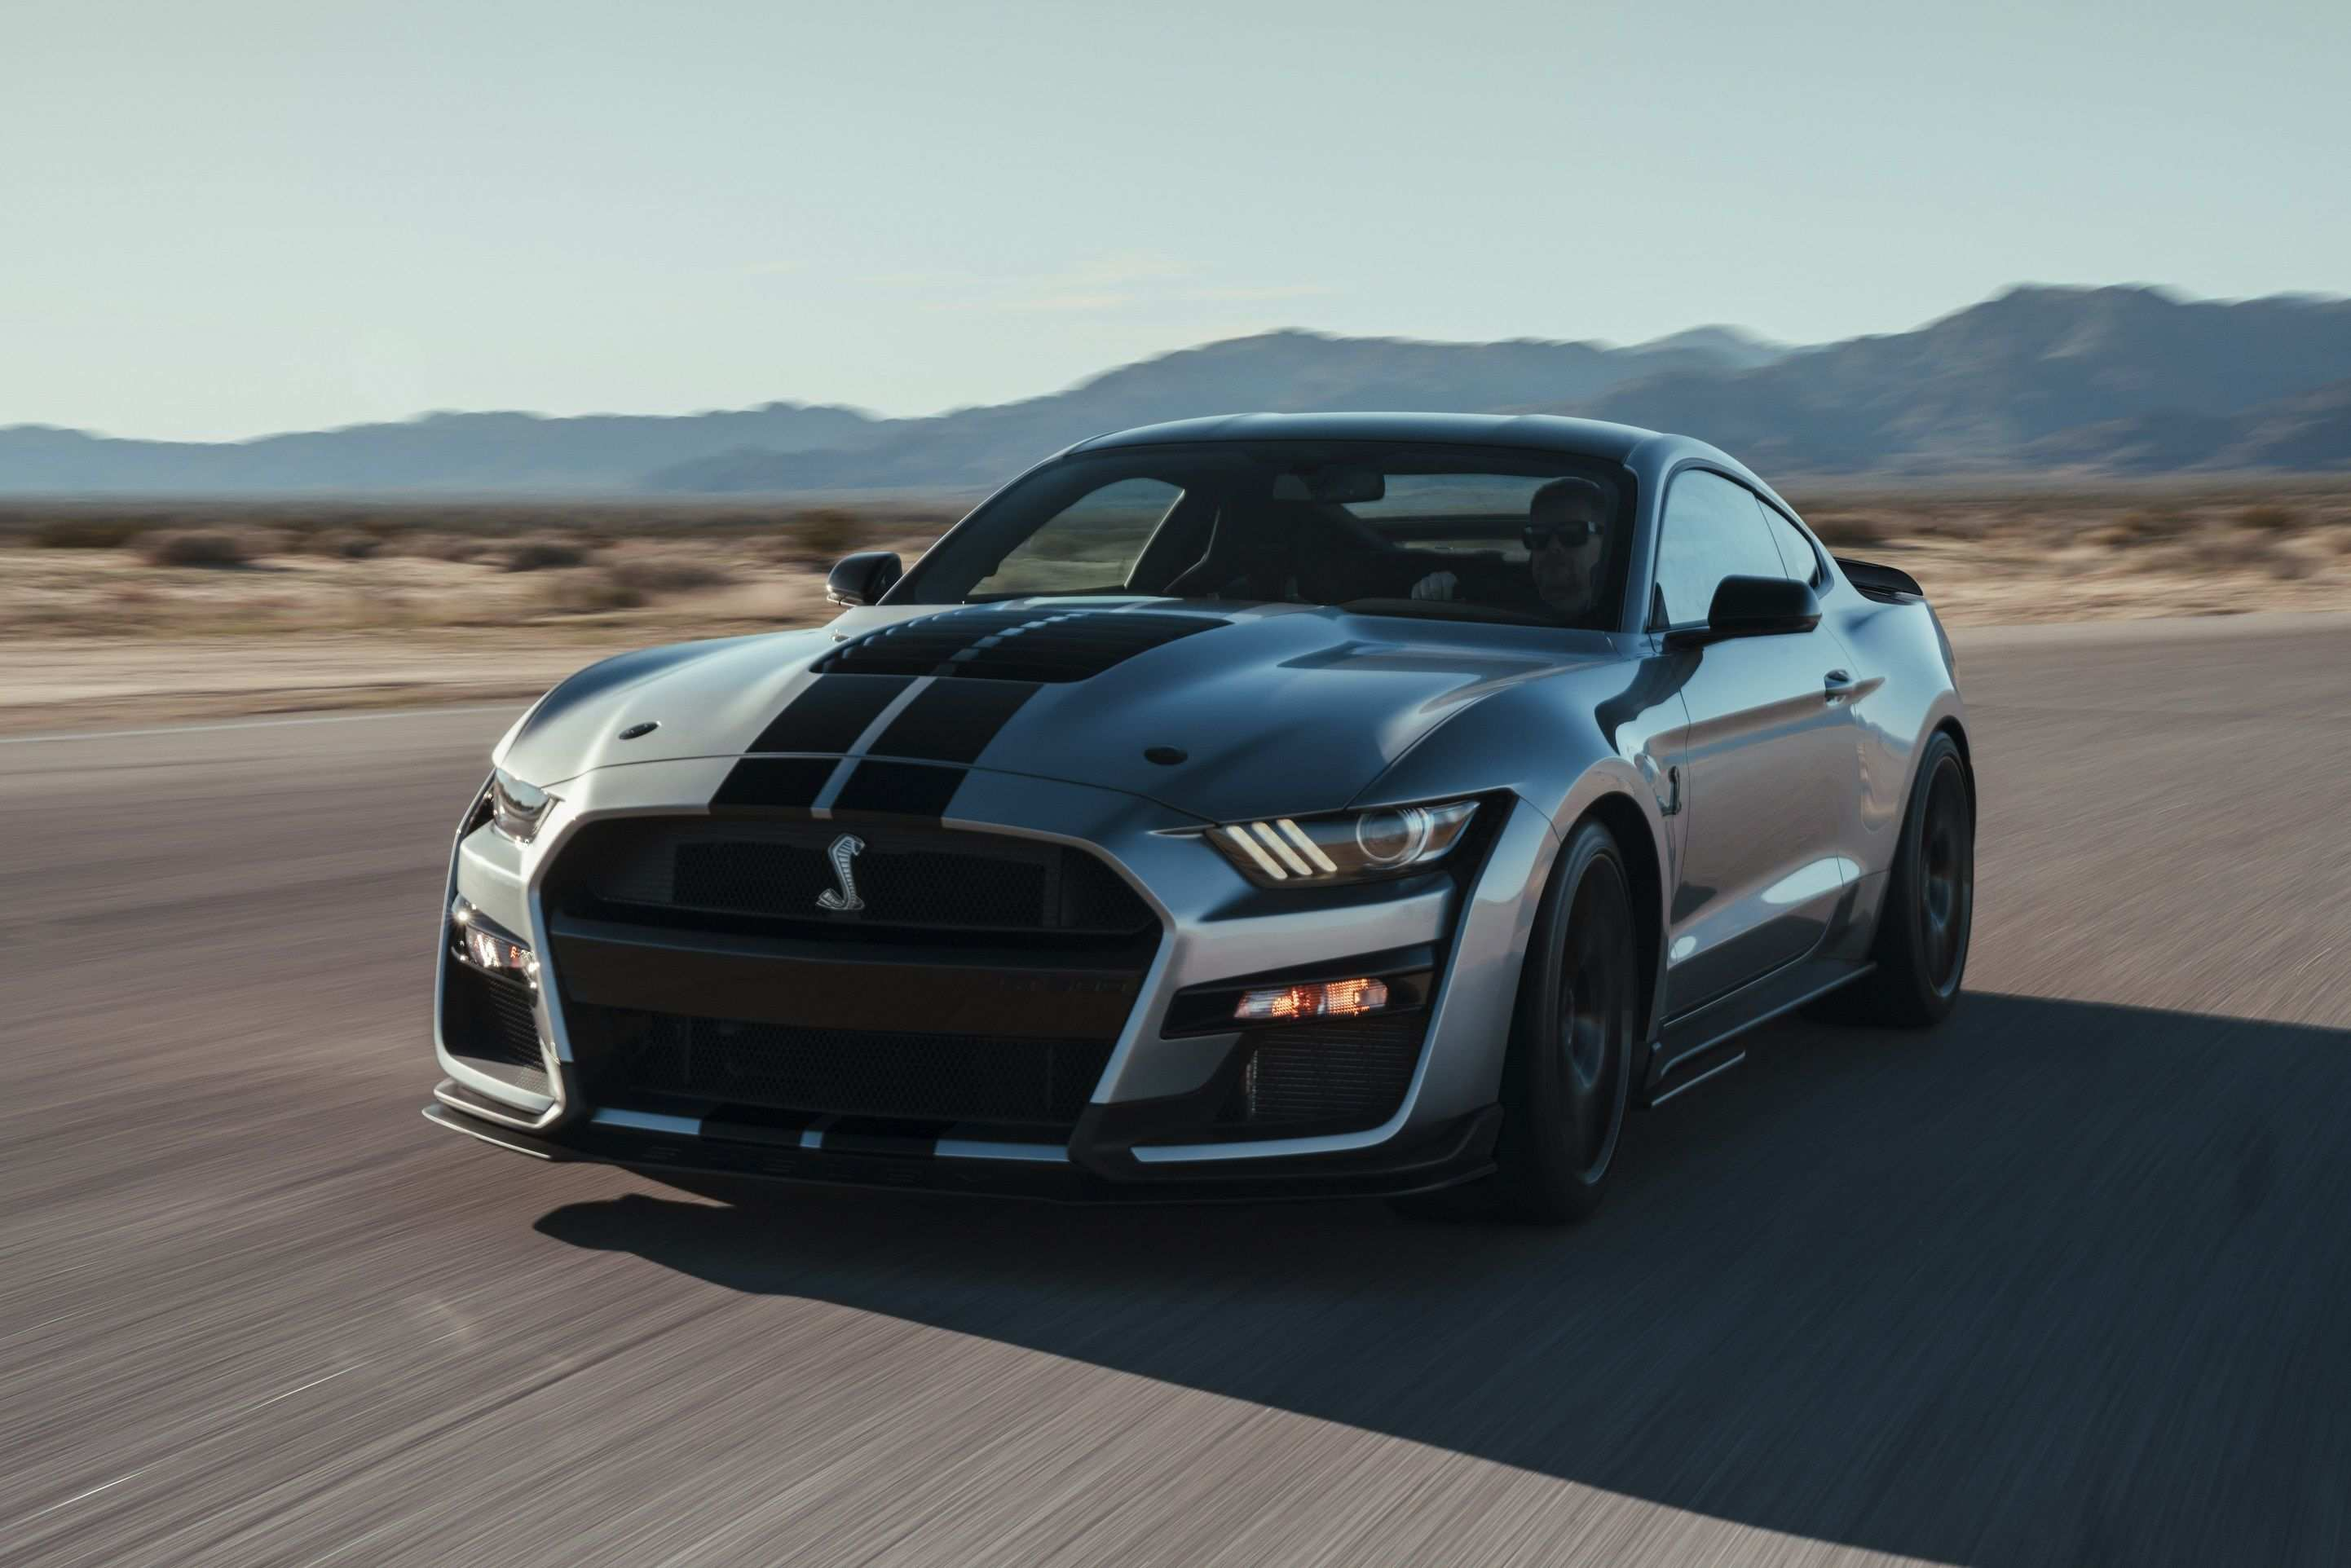 95 All New Price Of 2020 Ford Mustang Shelby Gt500 Release Date for Price Of 2020 Ford Mustang Shelby Gt500